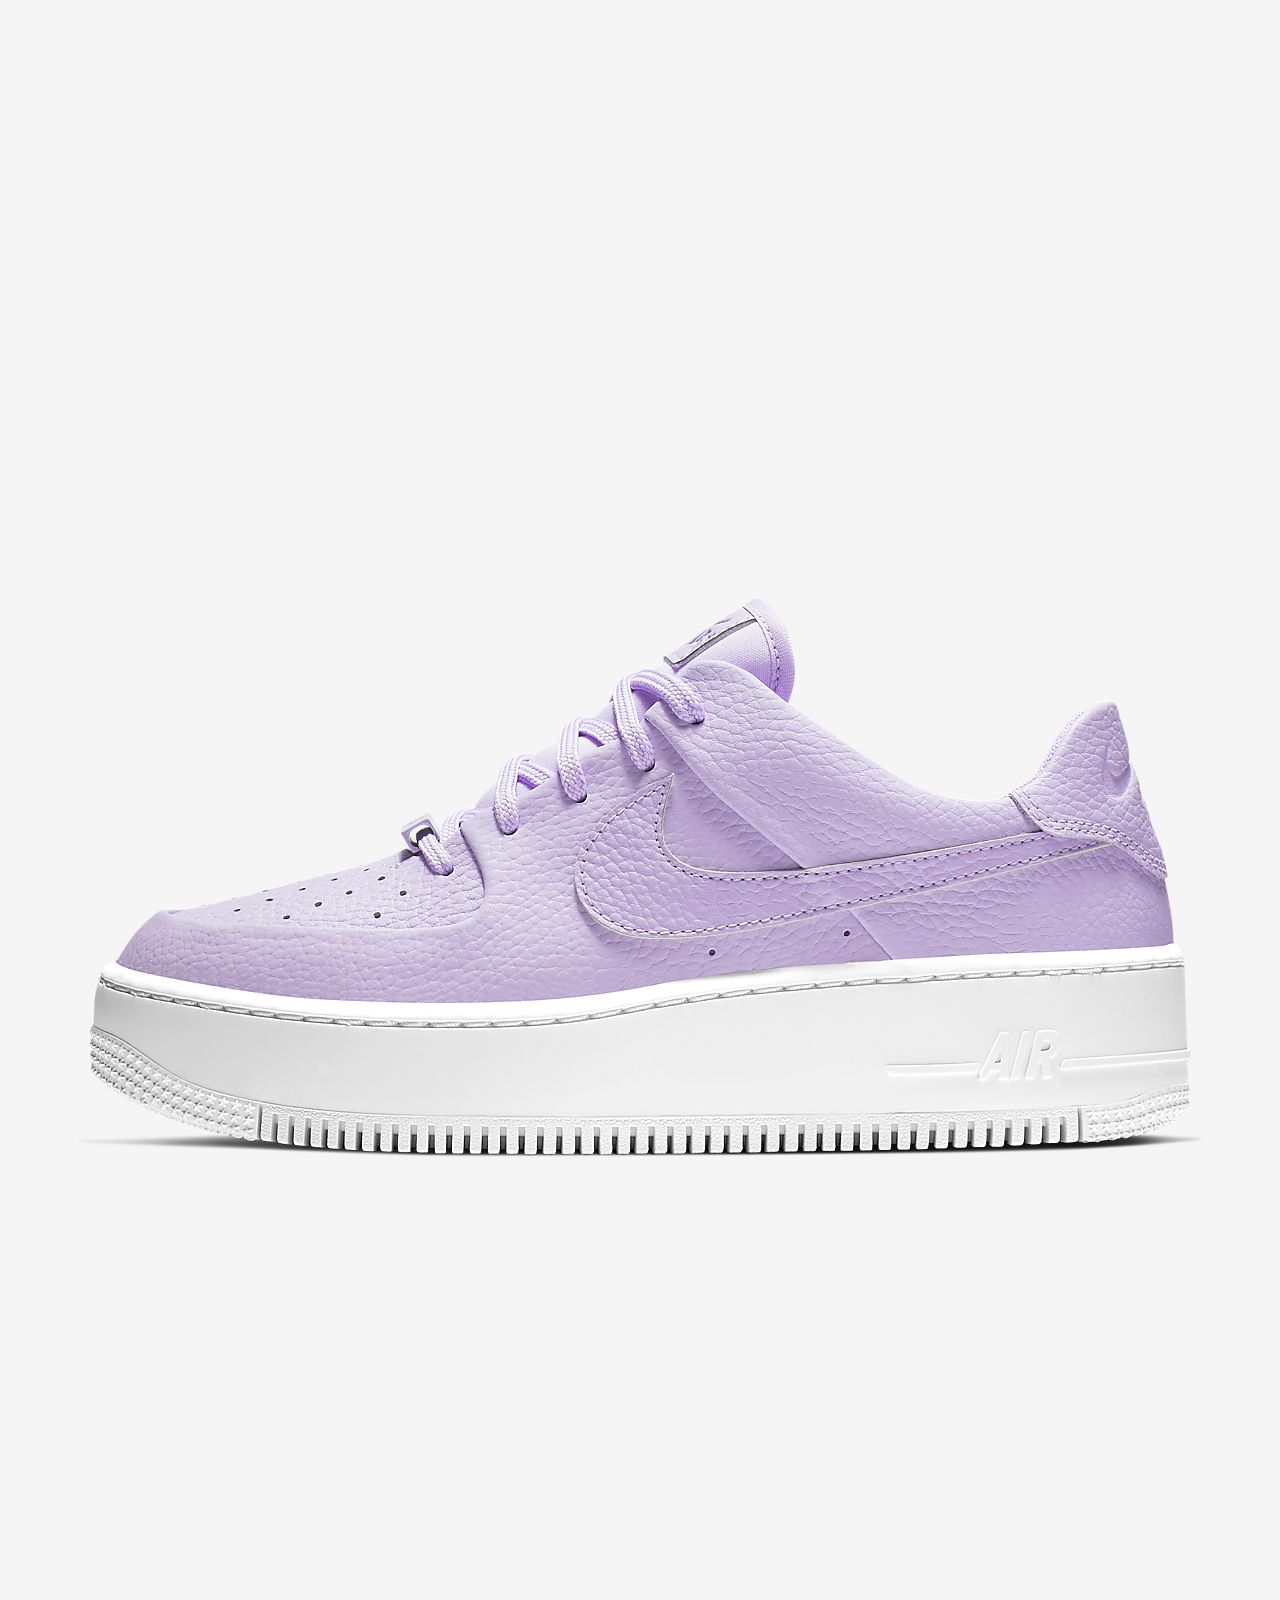 1a89e161cd8 Calzado para mujer Nike Air Force 1 Sage Low. Nike.com CL